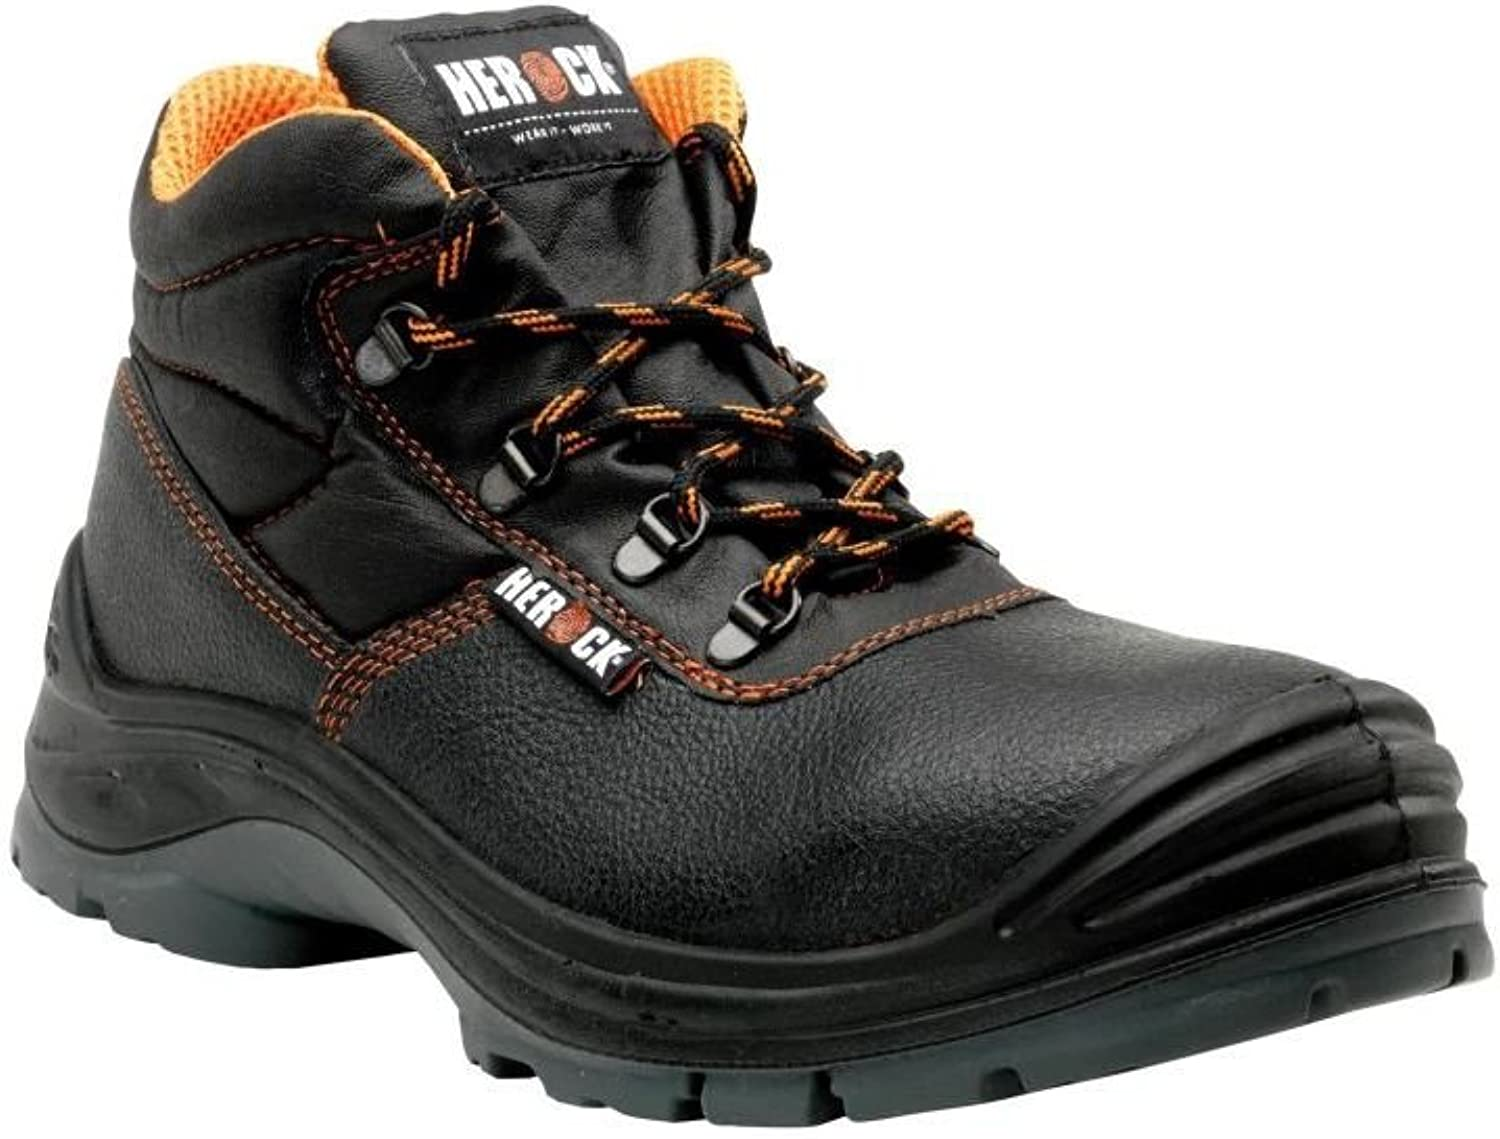 Primus High Compo S3 shoes - Rising Safety shoes Soul Rebel Footwear